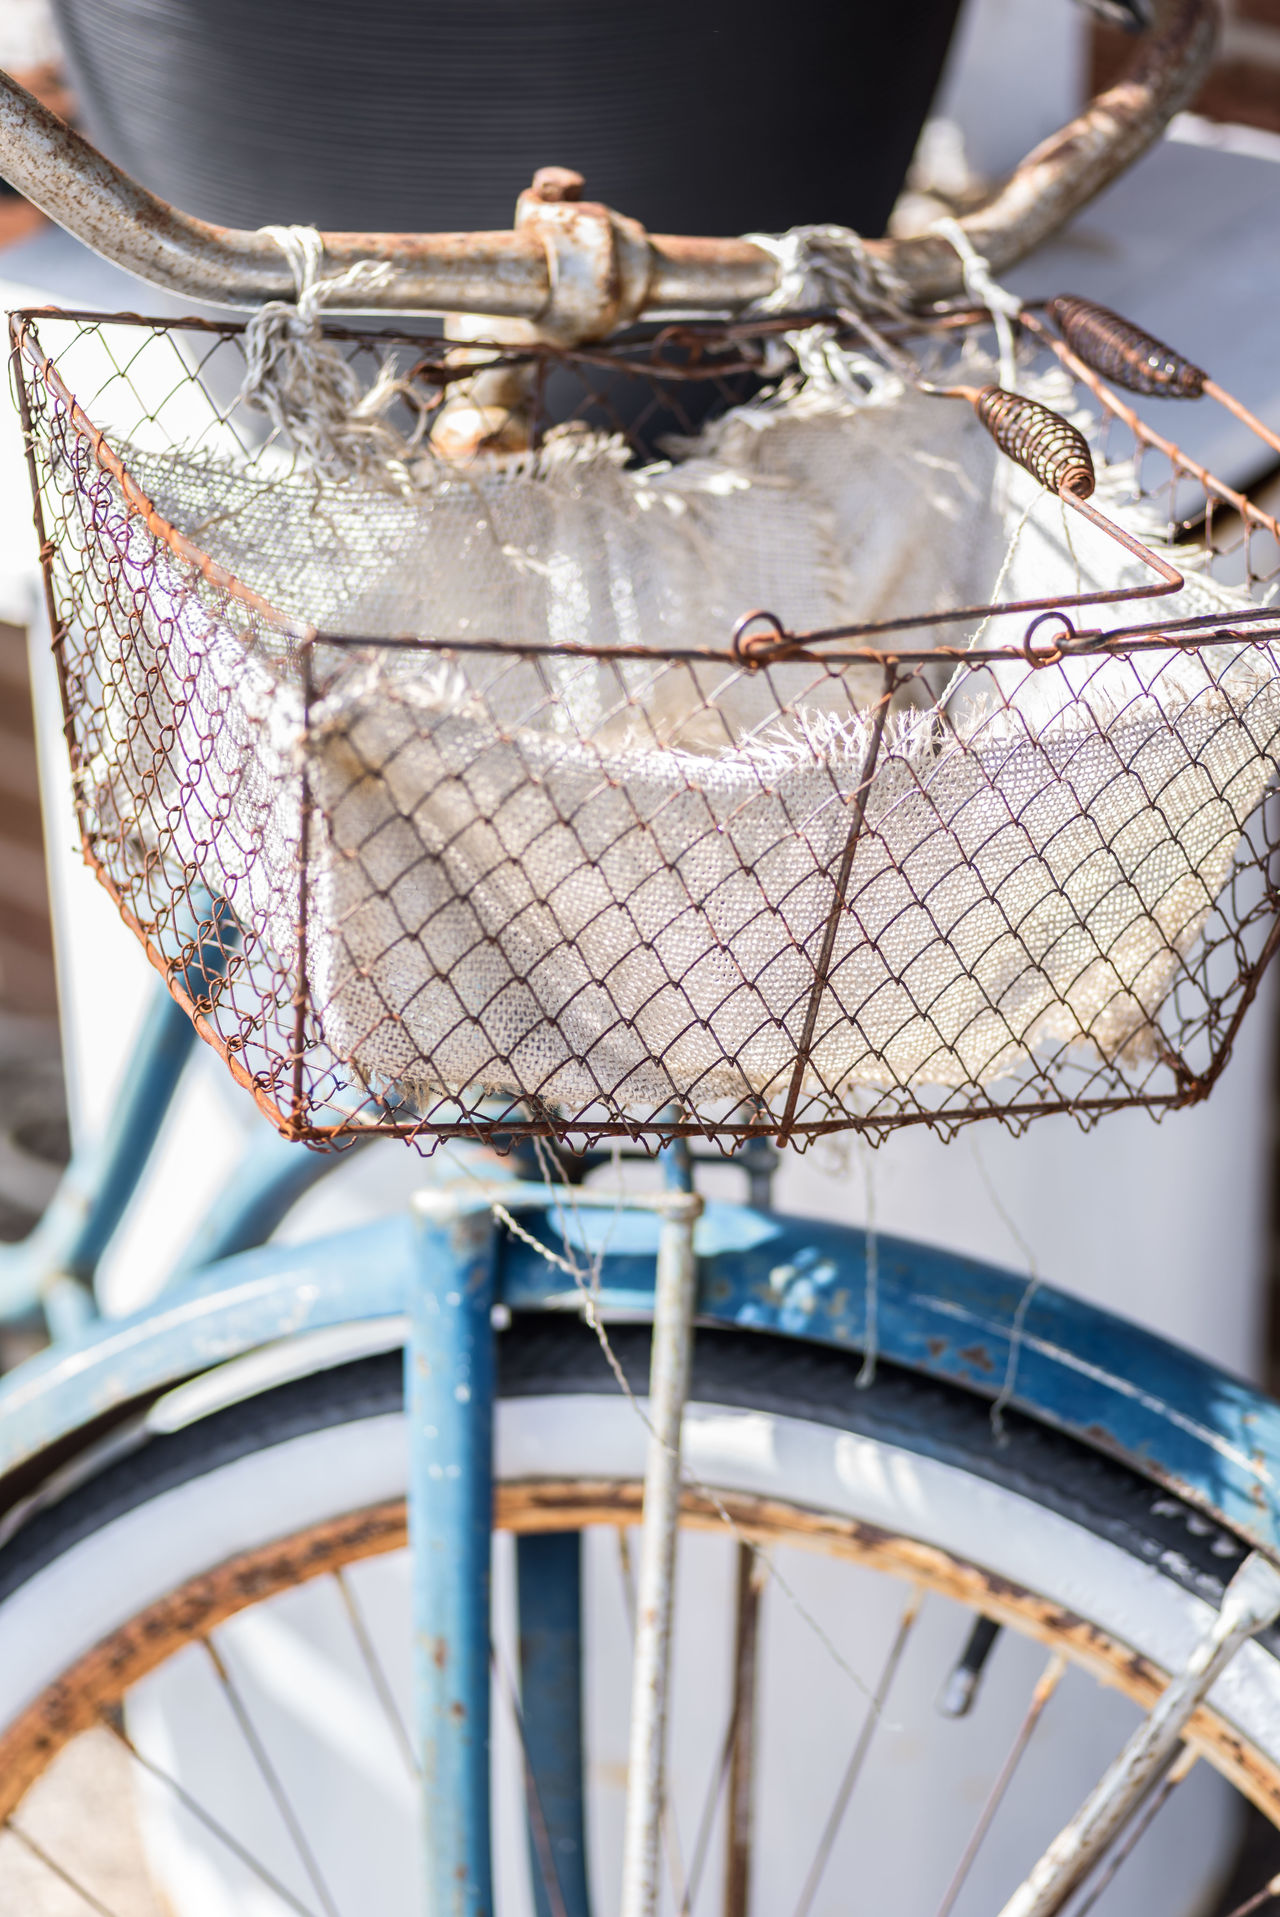 Old blue painted vintage bicycle with wire basket on rusty handlebars Selective Focus No People Spring Outdoors Day Macro Photography Soft Focus Vintage Bicycles Antique Bikes Retro Style Wire Basket Painted Rusty Metal Sunny Day Blue Color Cloth Bike Old Bike Rustic Style Garden Bike